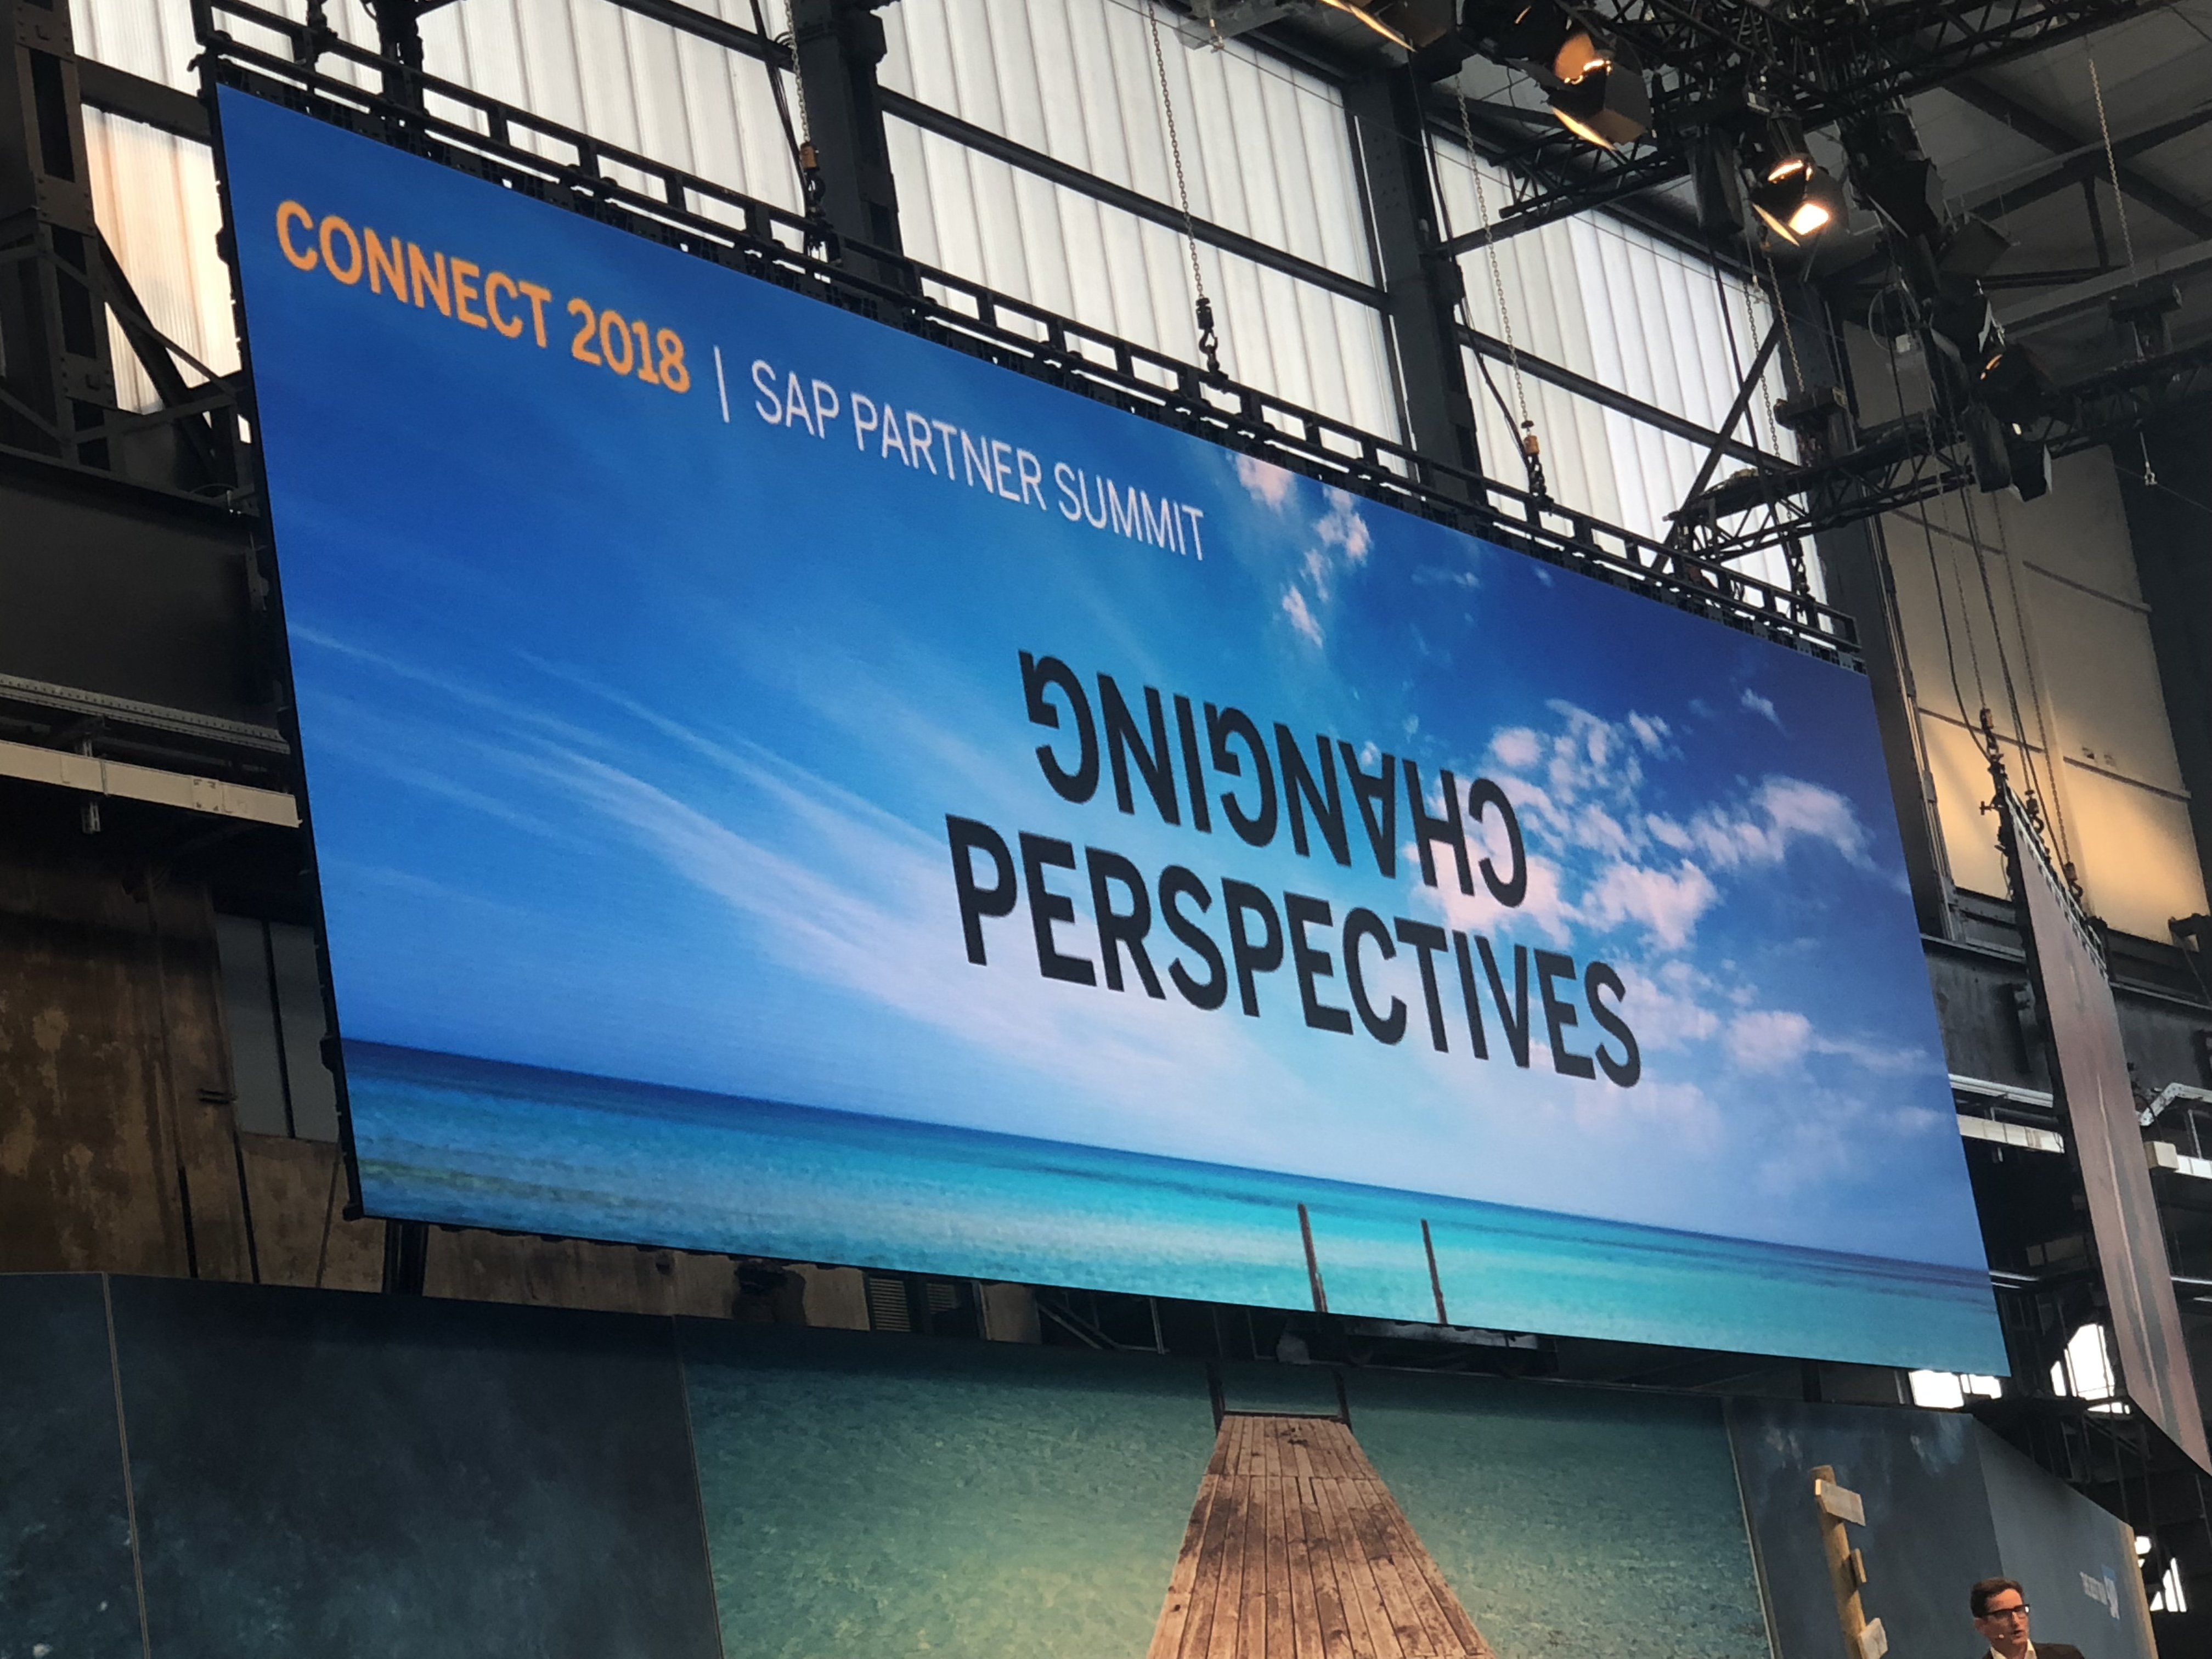 CNT @ SAP Connect 2018 in Düsseldorf